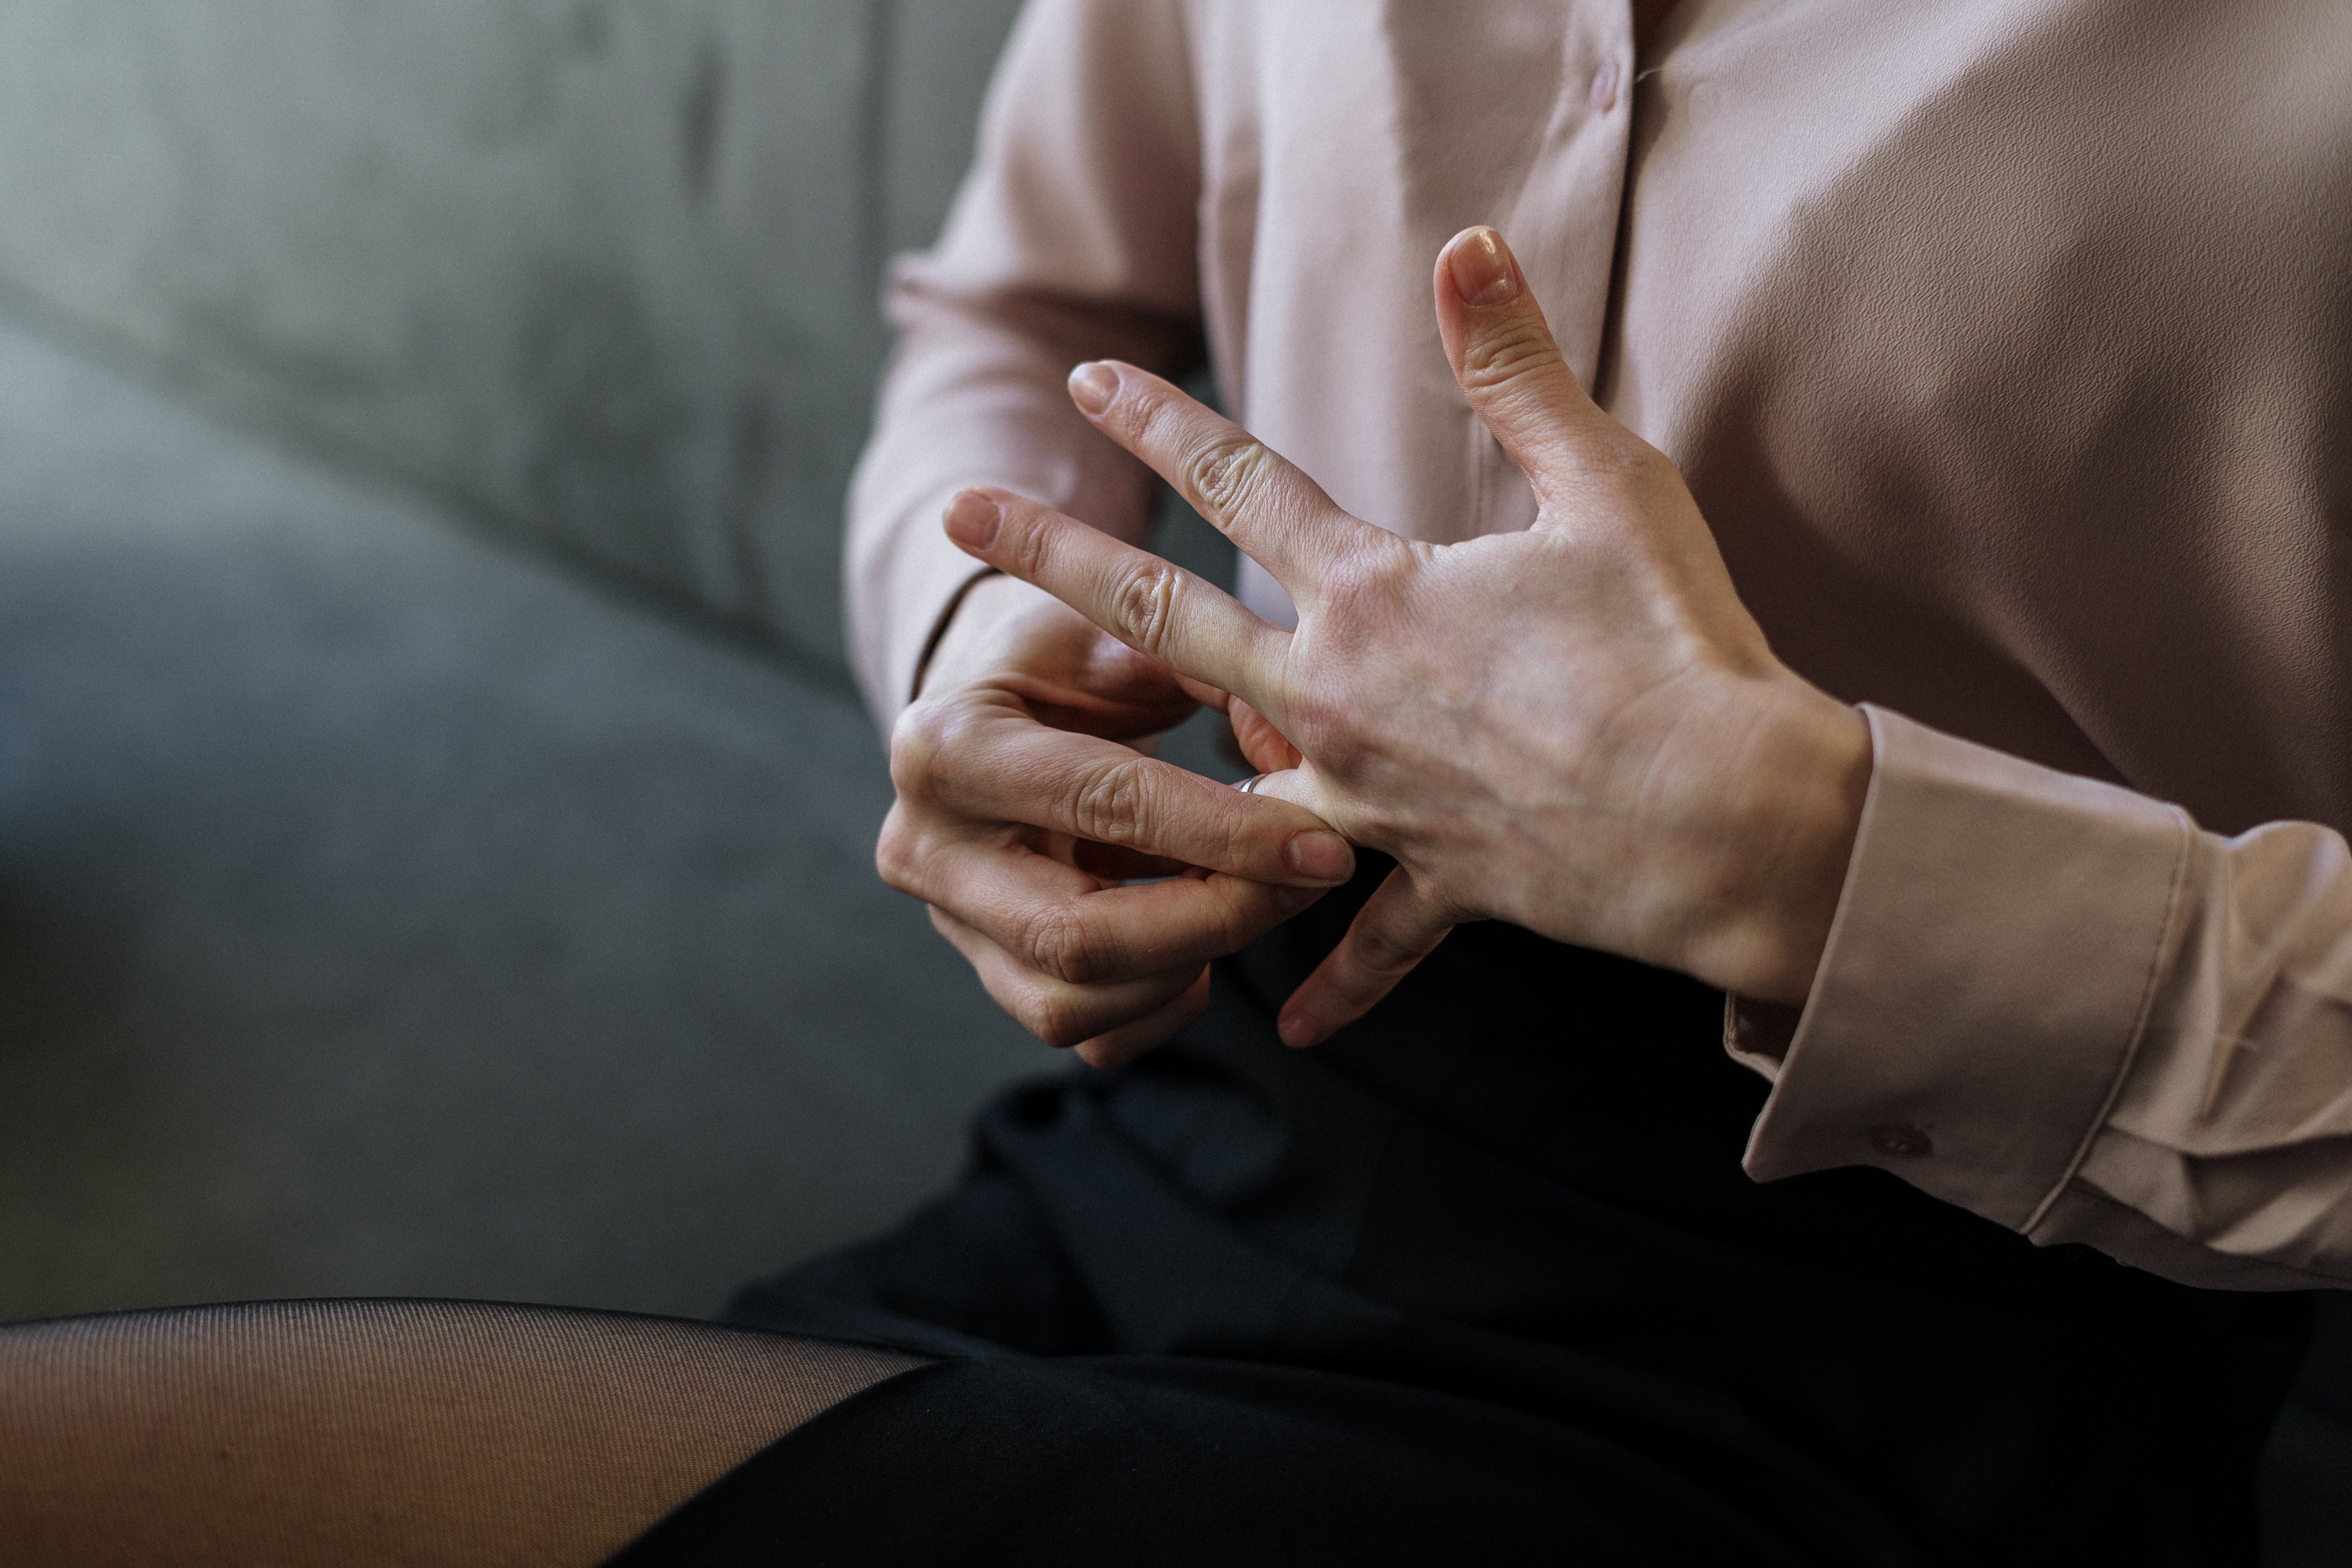 Woman removing her ring | Source: Pexels